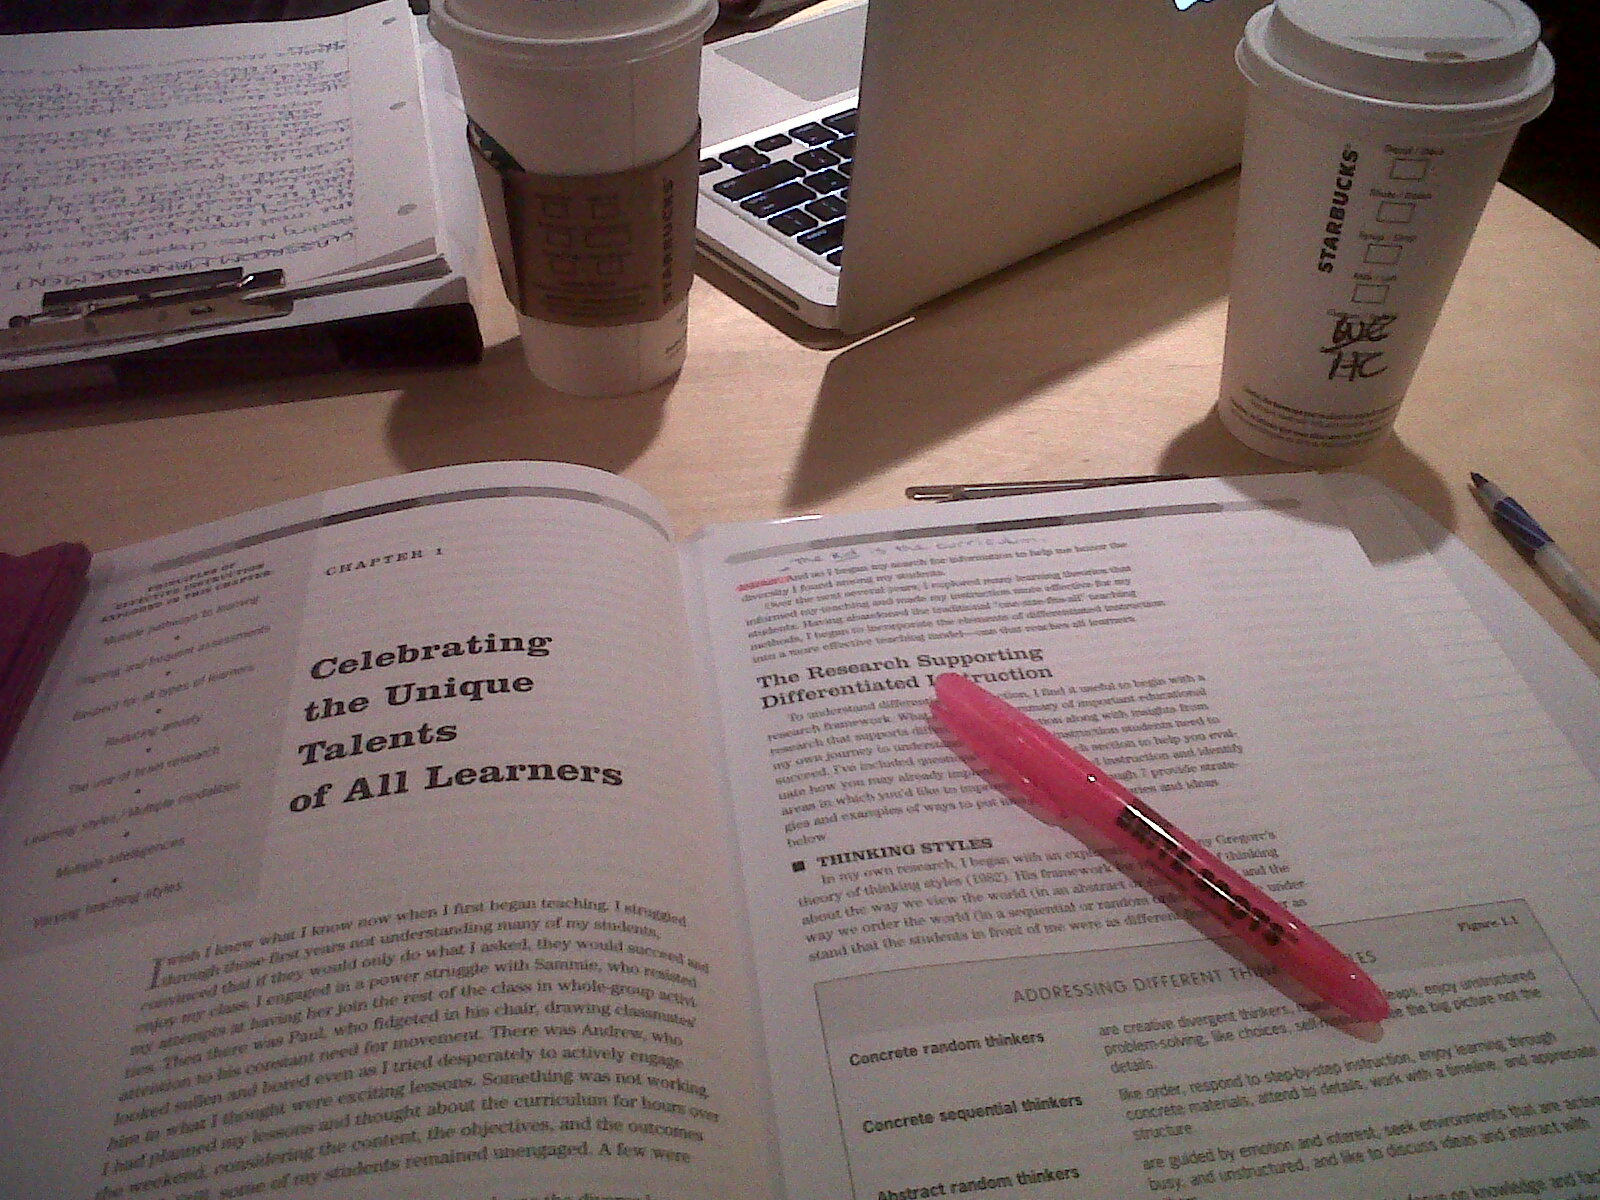 sunshine and whimsy 2011 hello homework date at starbucks the roomie i had a grande hot chocolate no whip of course